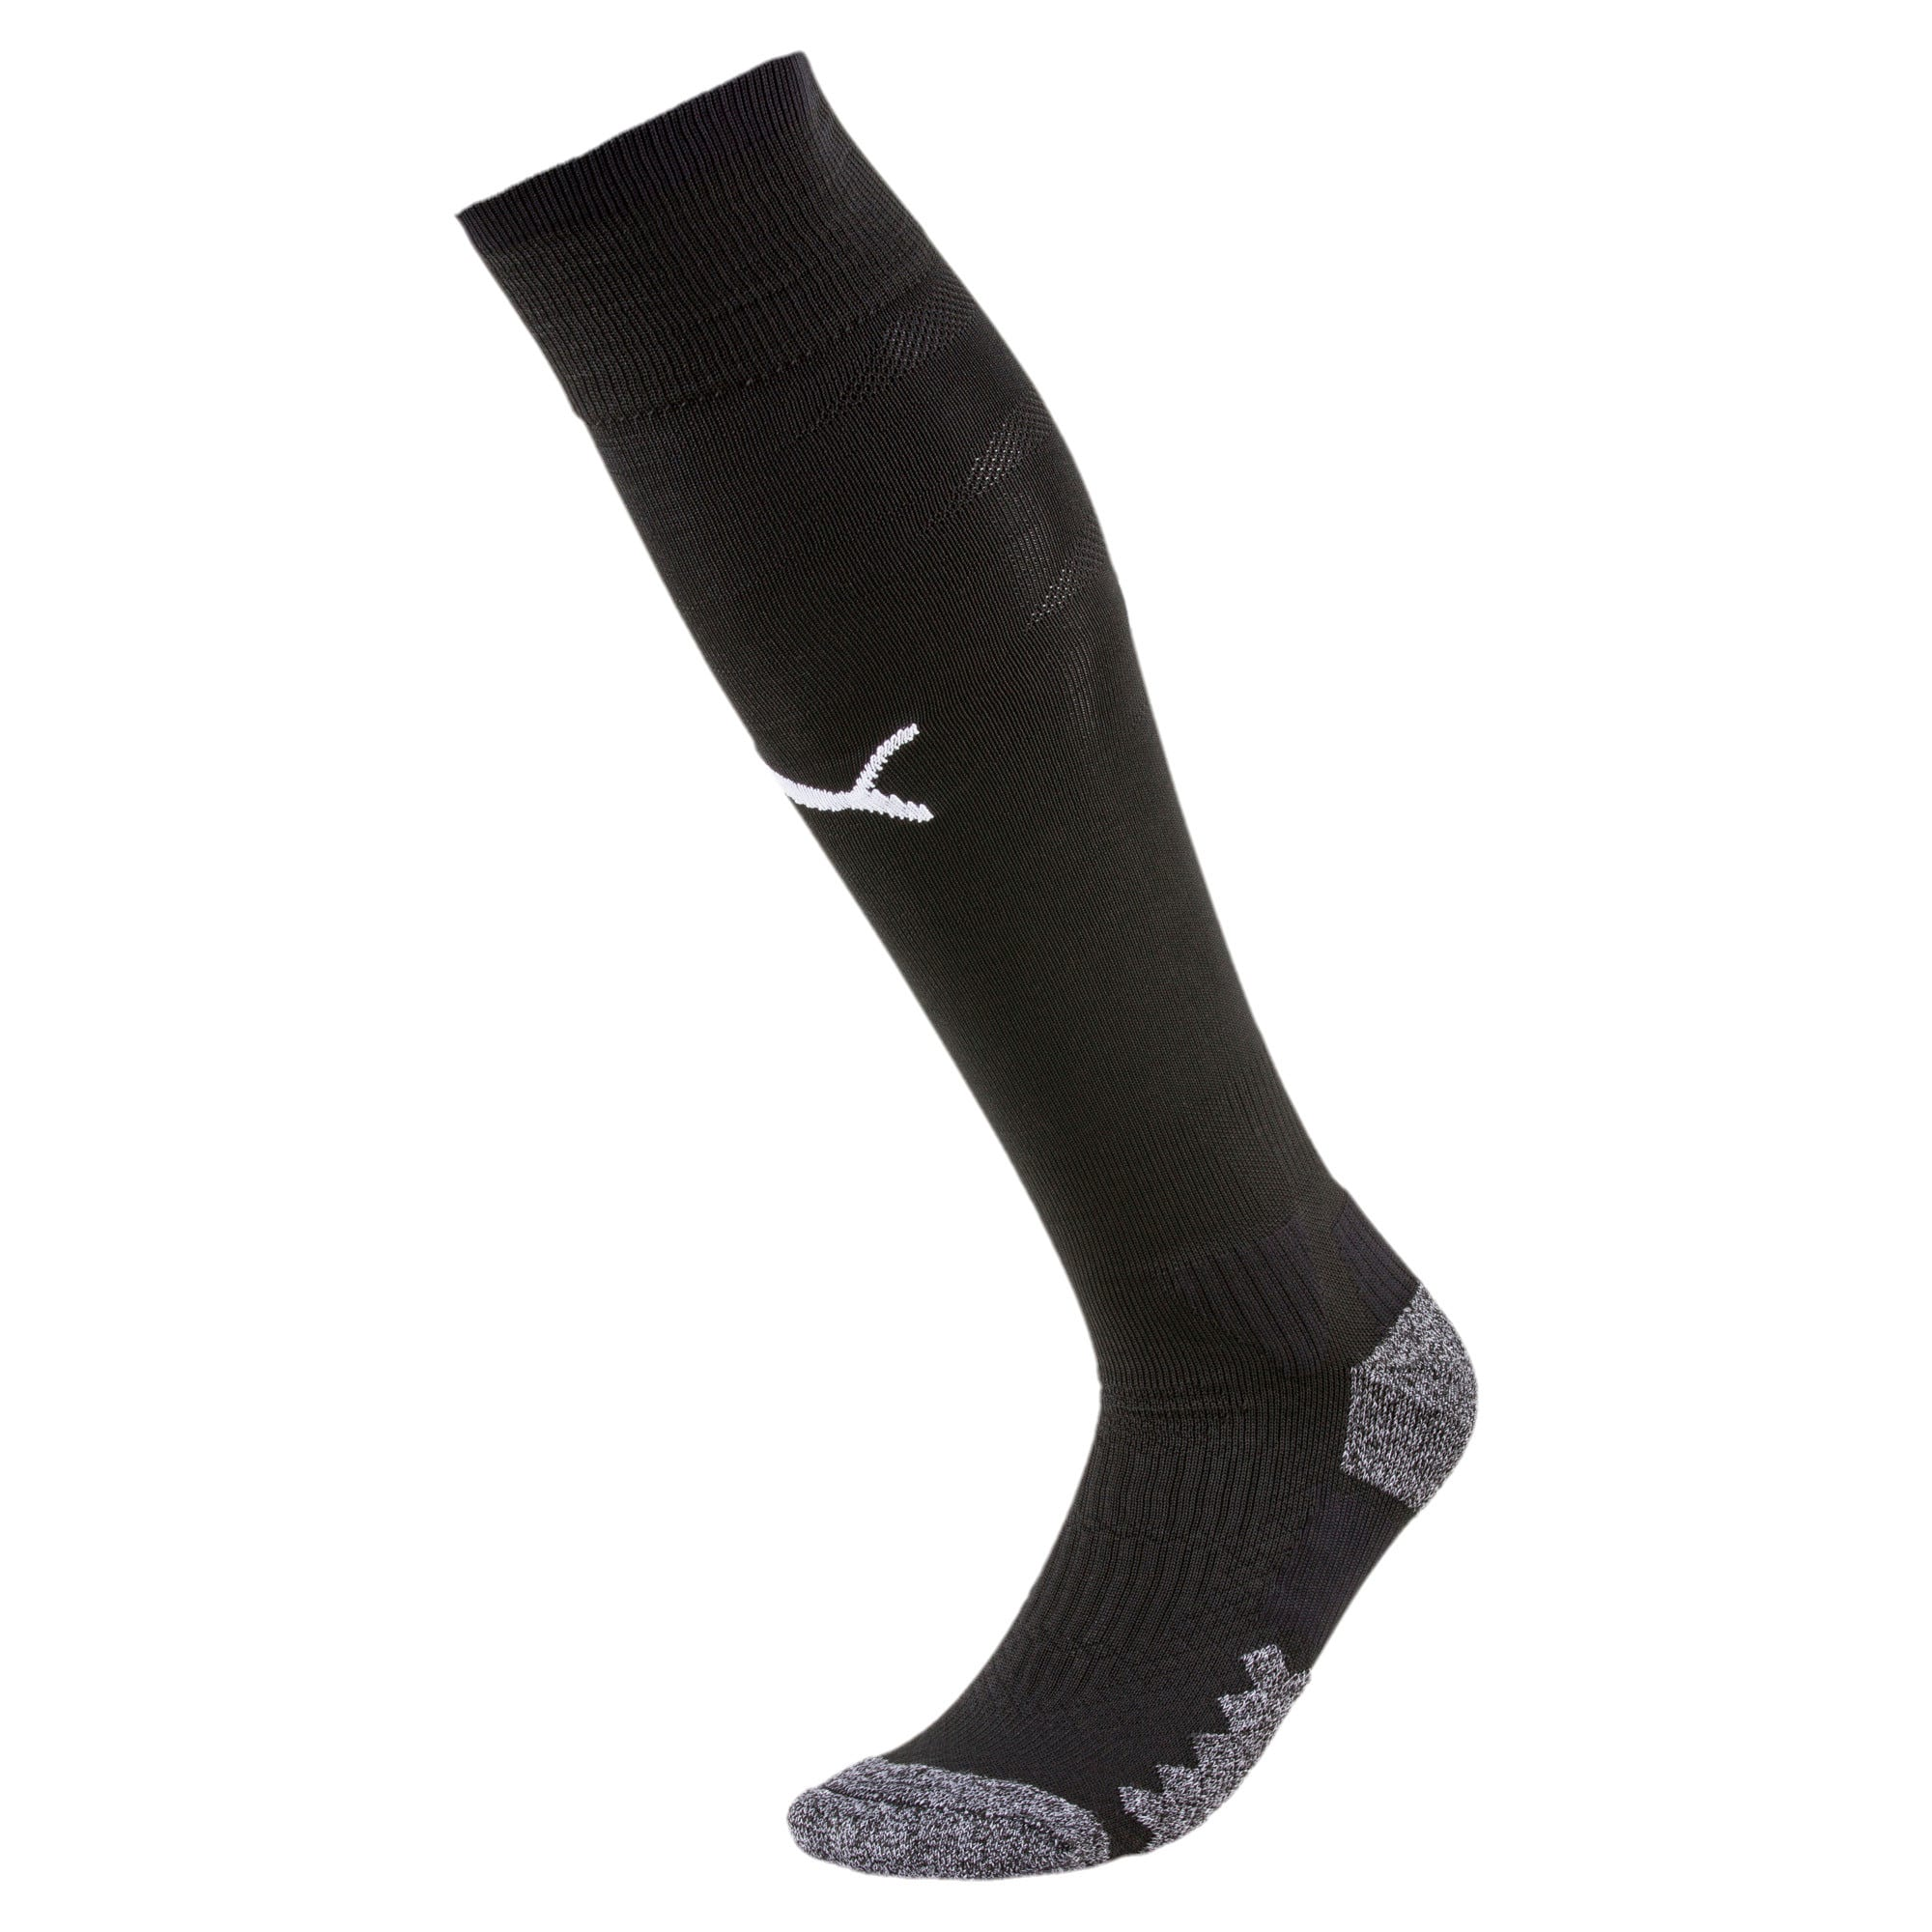 Thumbnail 1 of FIGC Italia Separate Socks, Puma Black, medium